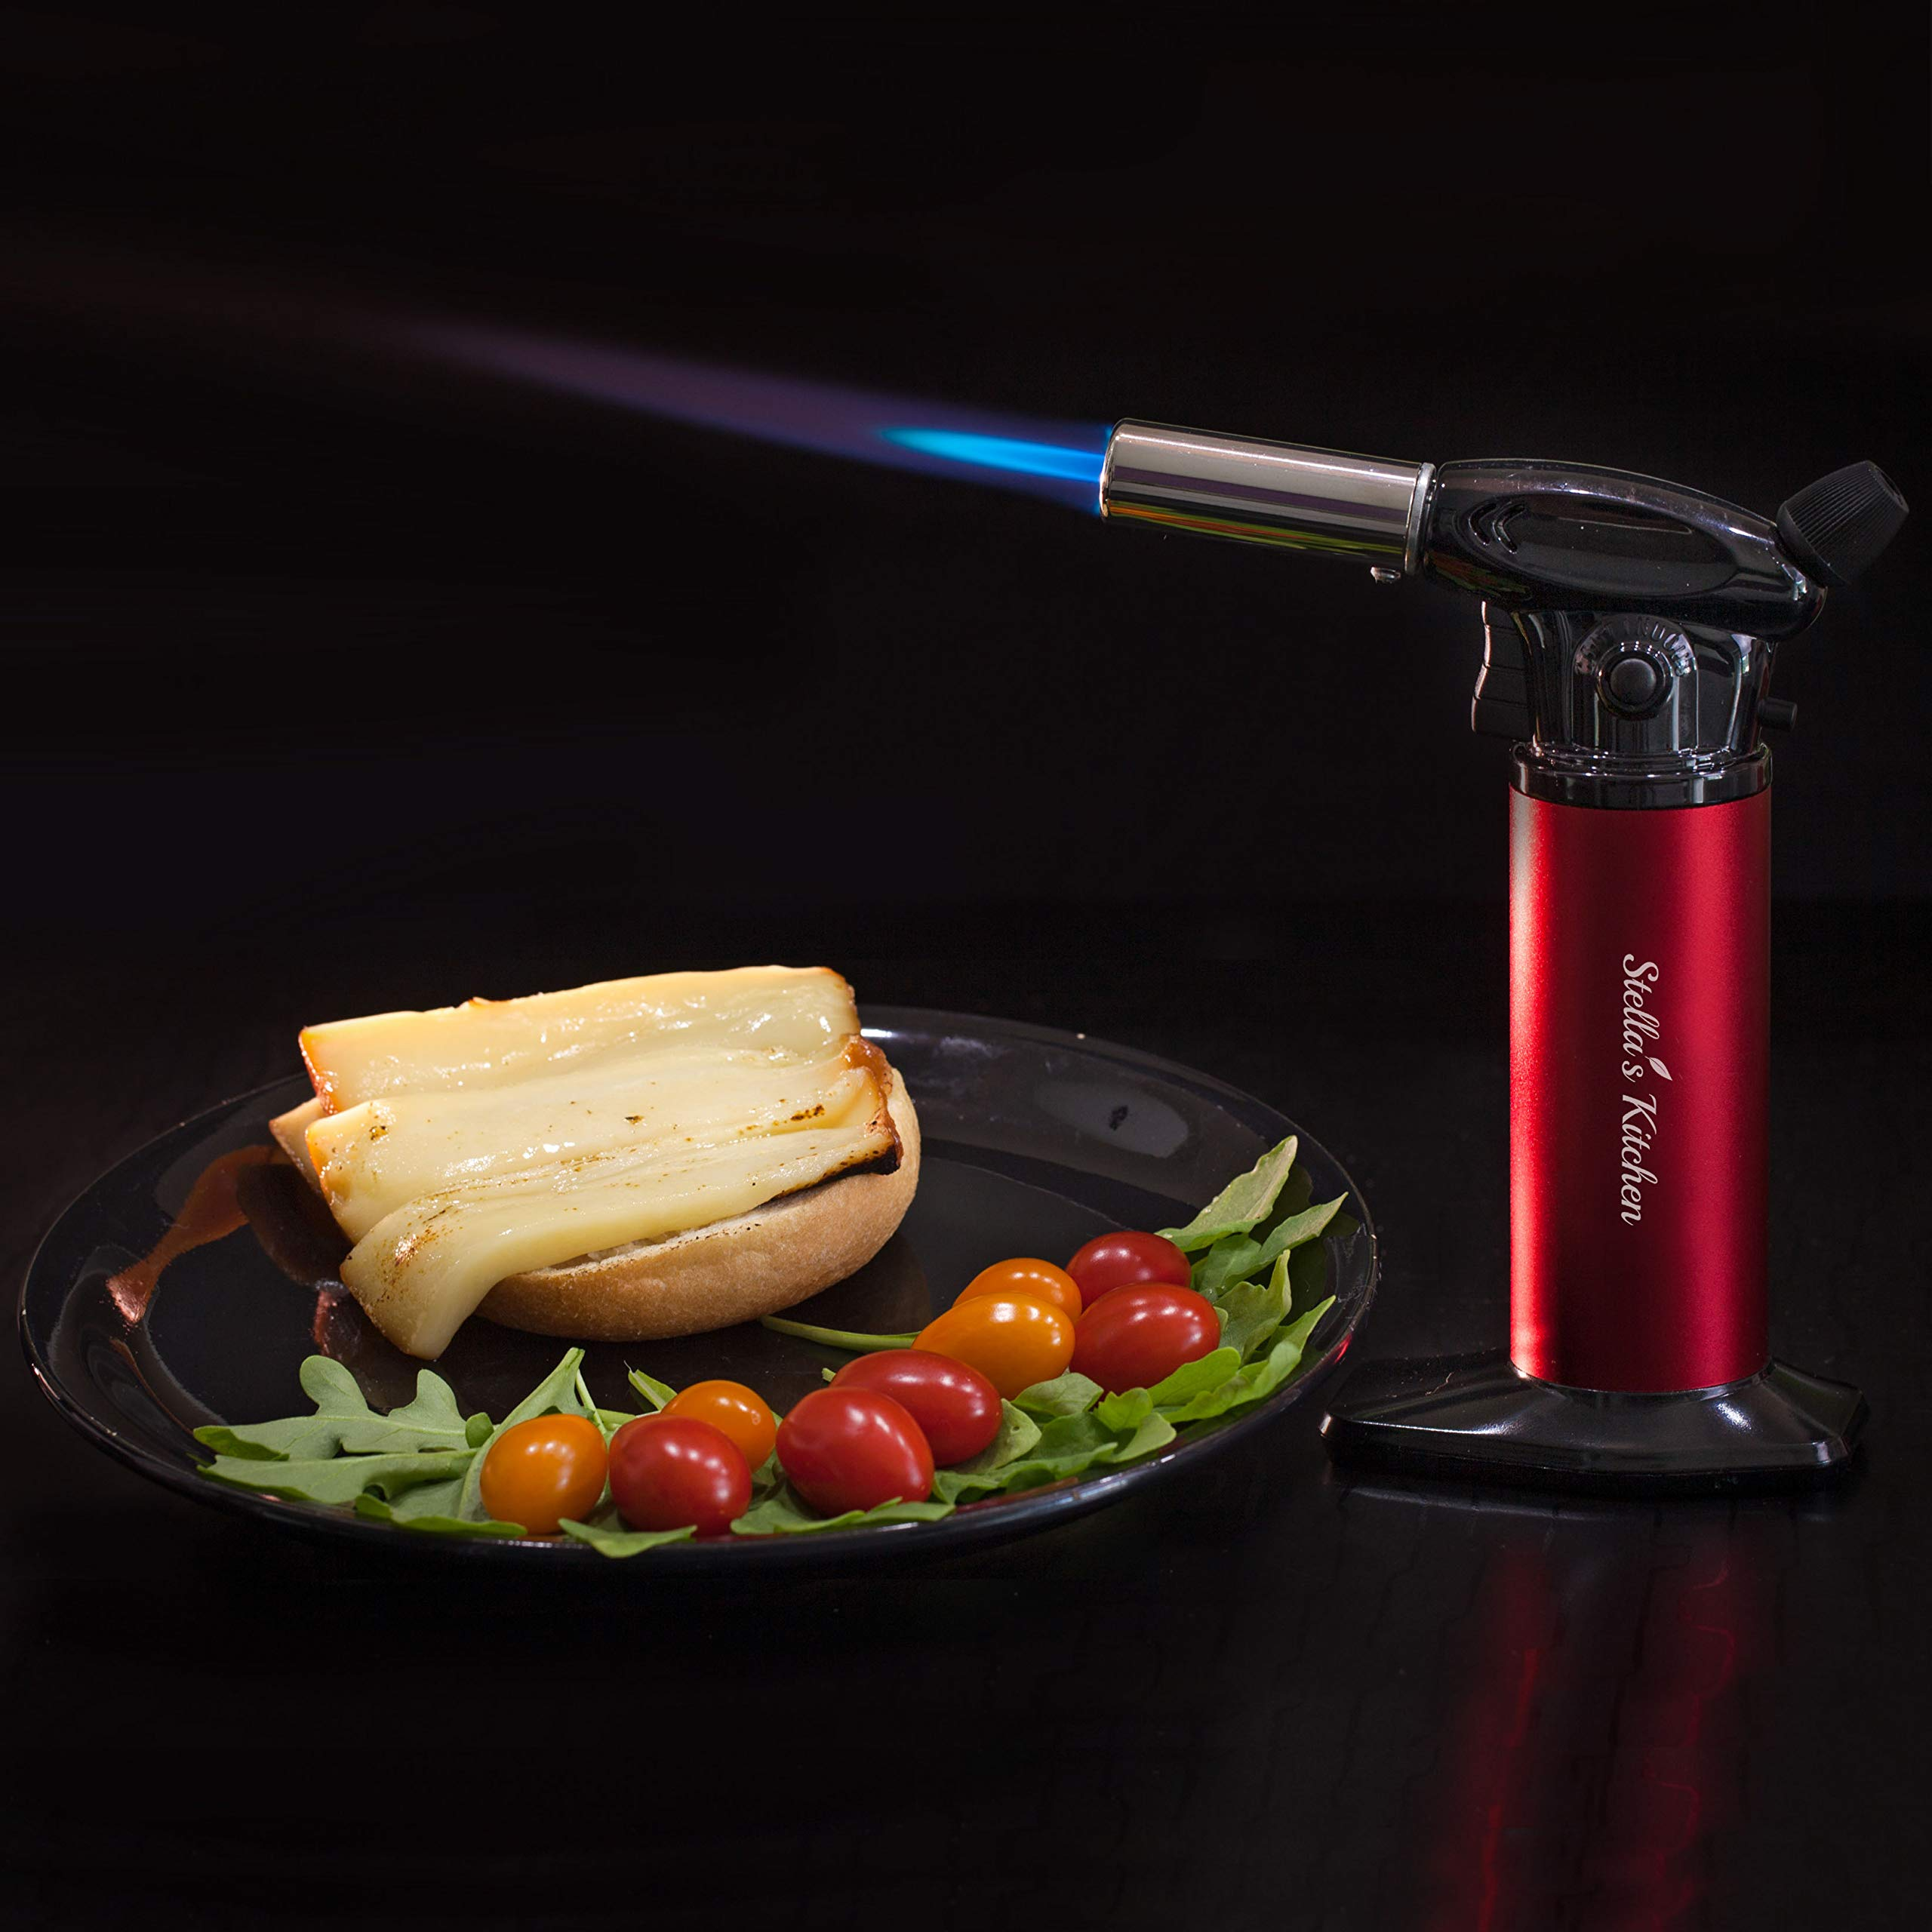 Culinary Torch for Creme Brulee 5 Pack-Culinary Torch-Refillable Butane Torch-Blow Torch-Cooking Torch - Butane Food Torch- Torch for Dabs with Fuel Gauge&Adjustable Flame-Chefs Torch- Butane Torch by Stella's Kitchen (Image #9)